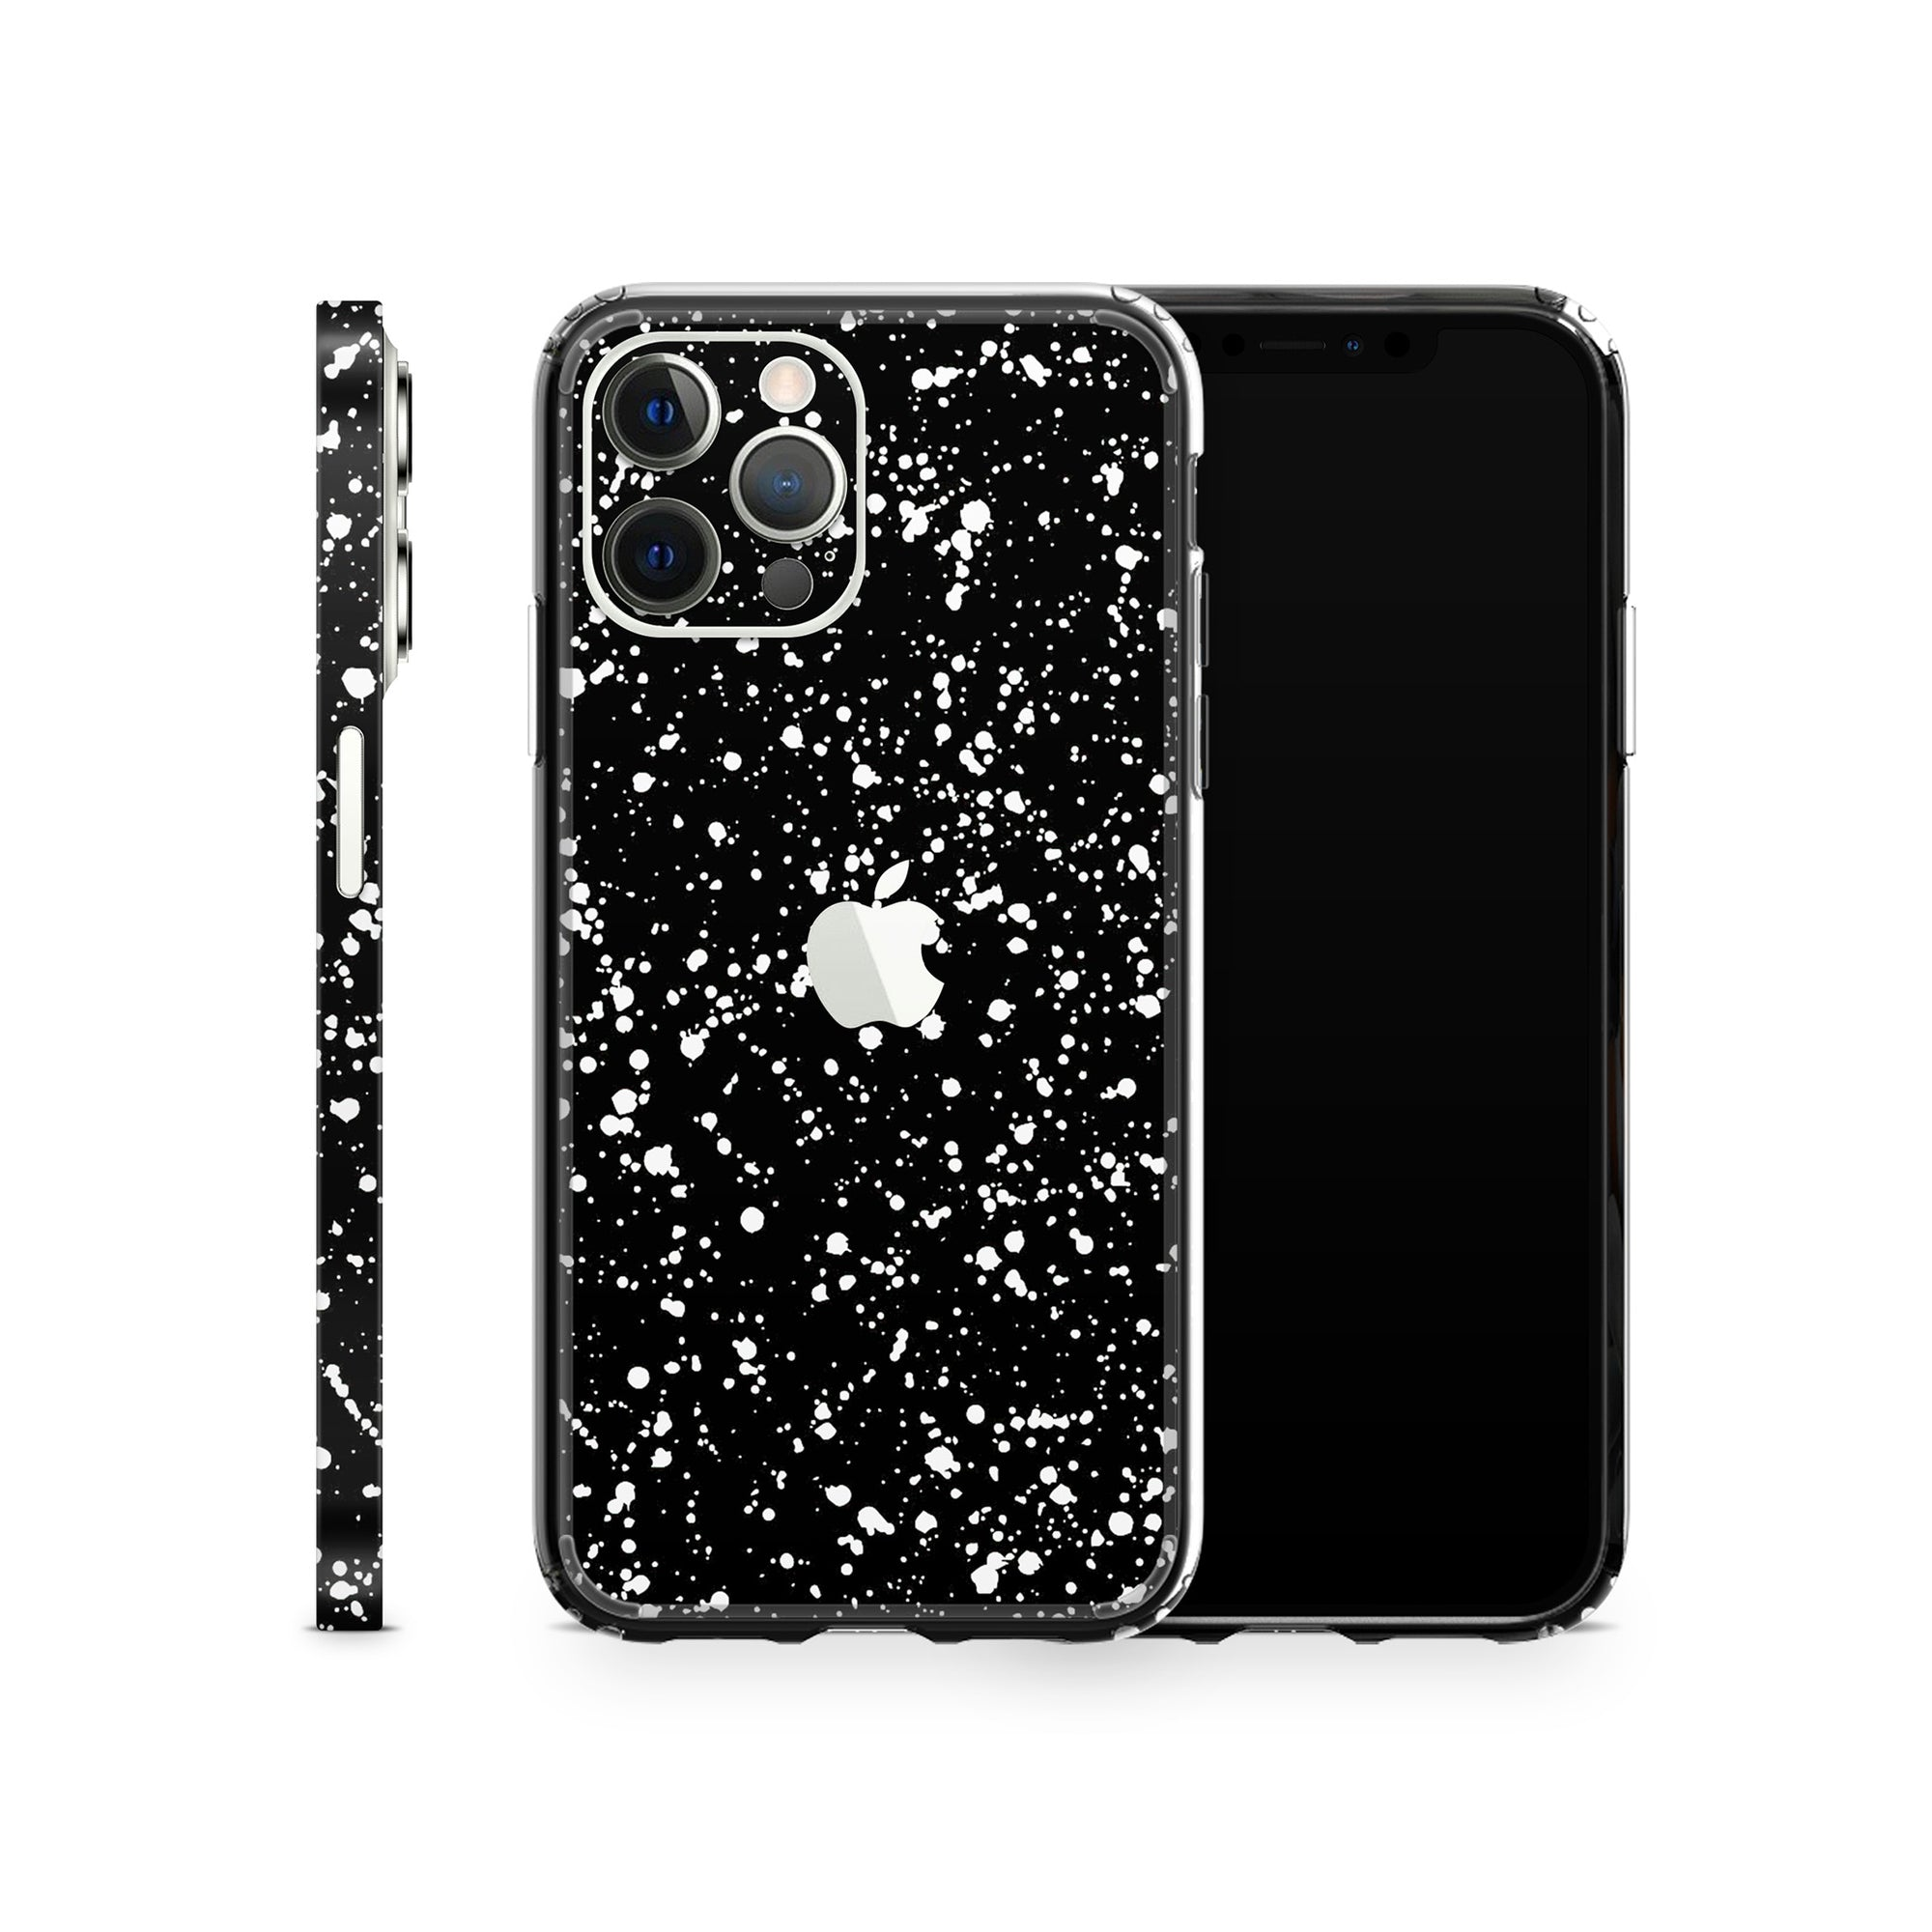 iPhone Case 12 Pro Black Speckle